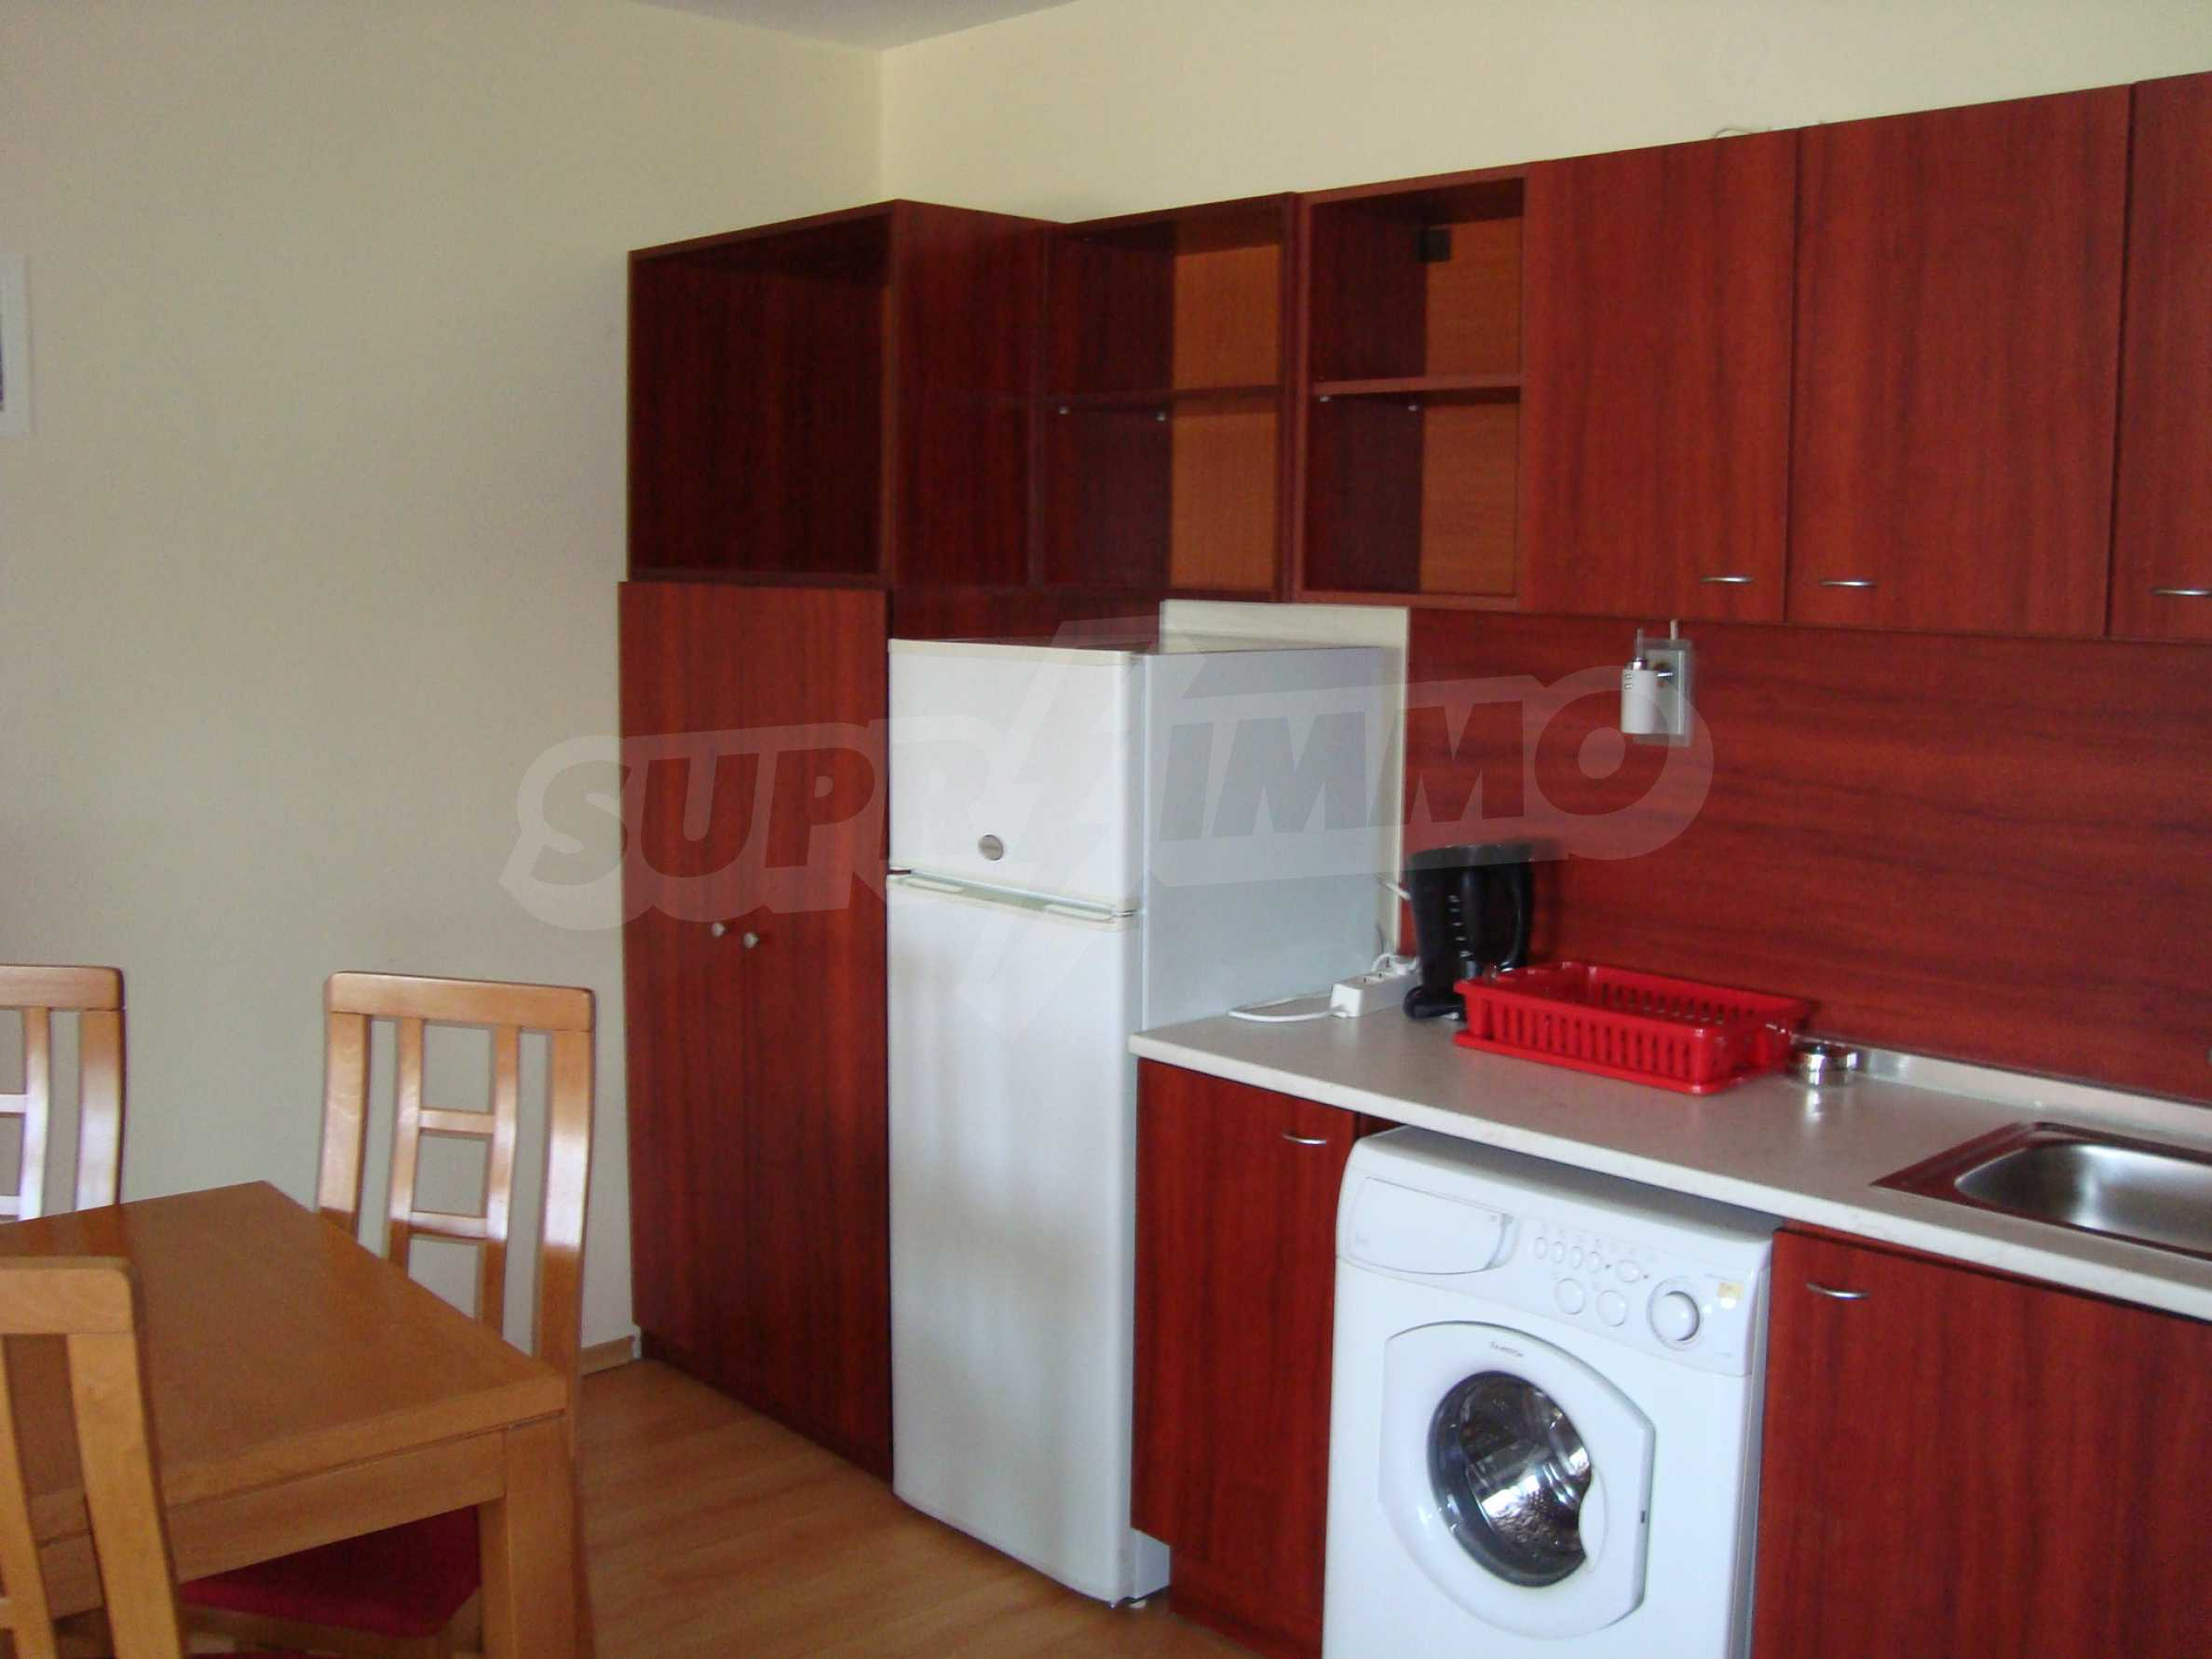 One-bedroom apartment in Prestige City 1 complex in Sunny beach 5